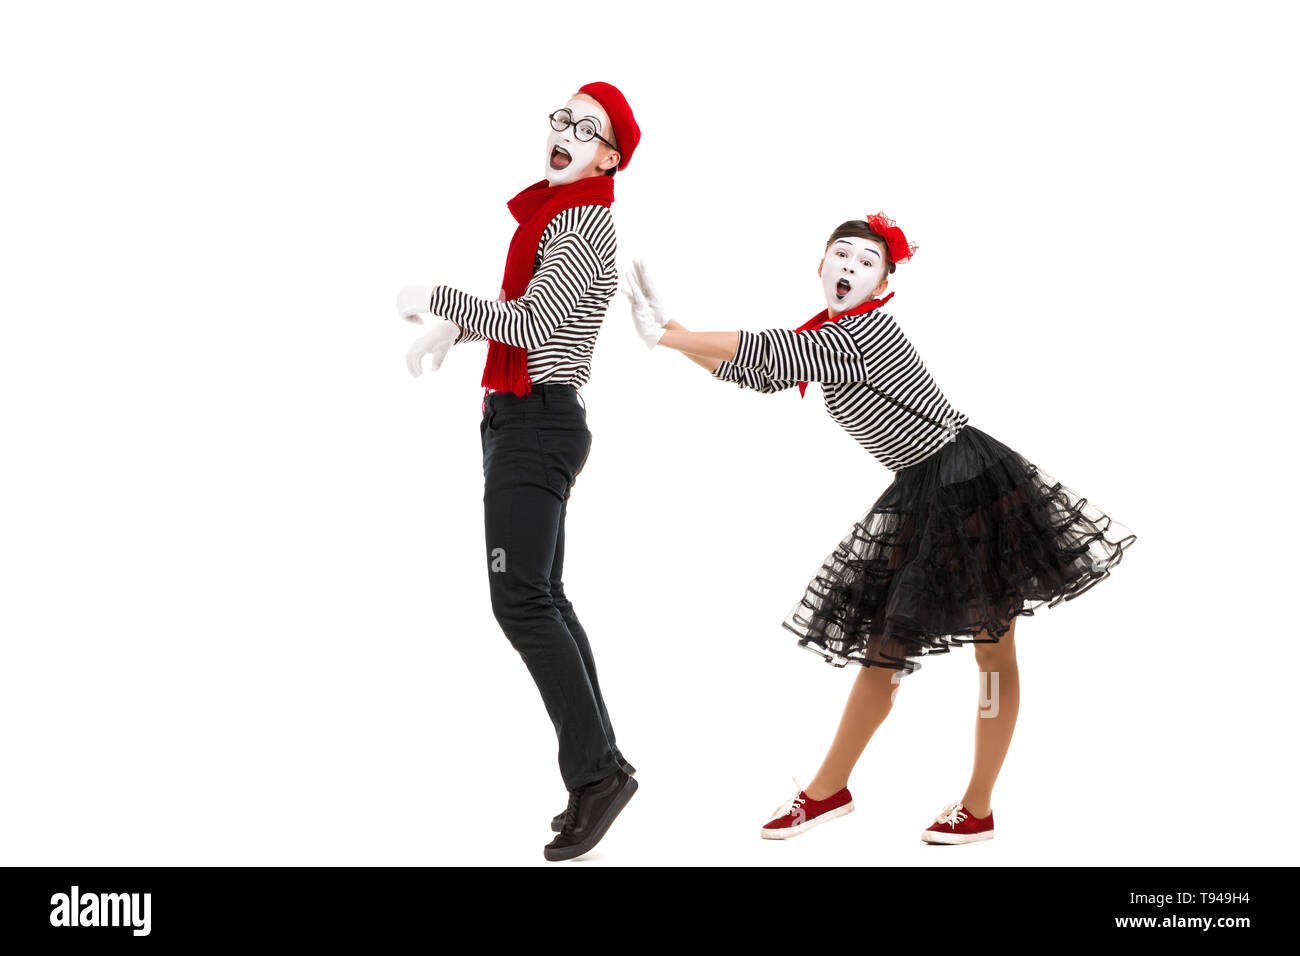 surprised mimes in striped shirts. Man and woman dressed as actors of pantomime theater isolated on white background - Stock Image